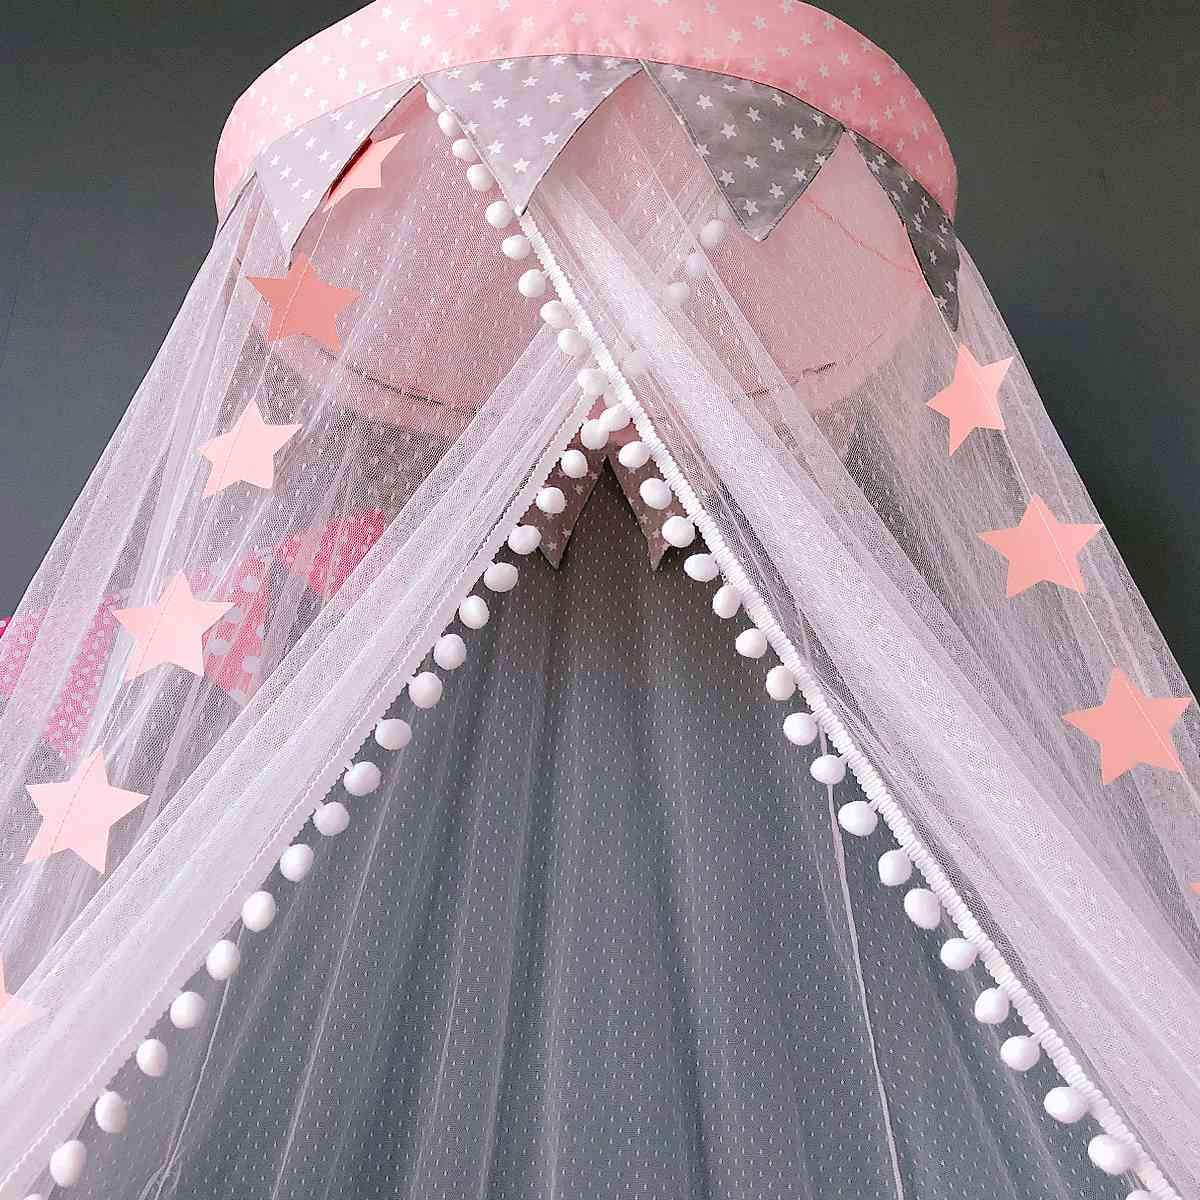 Dix-Rainbow Bed Canopy Mosquito Net Baby Crib Kids Twin Full Queen Size Bed, Reading Nook for Girls and Boys, Princess Lace Round Dome Fairy Netting Curtains, Kids Play Tent Castle Games House - Pink by Dix-Rainbow (Image #8)